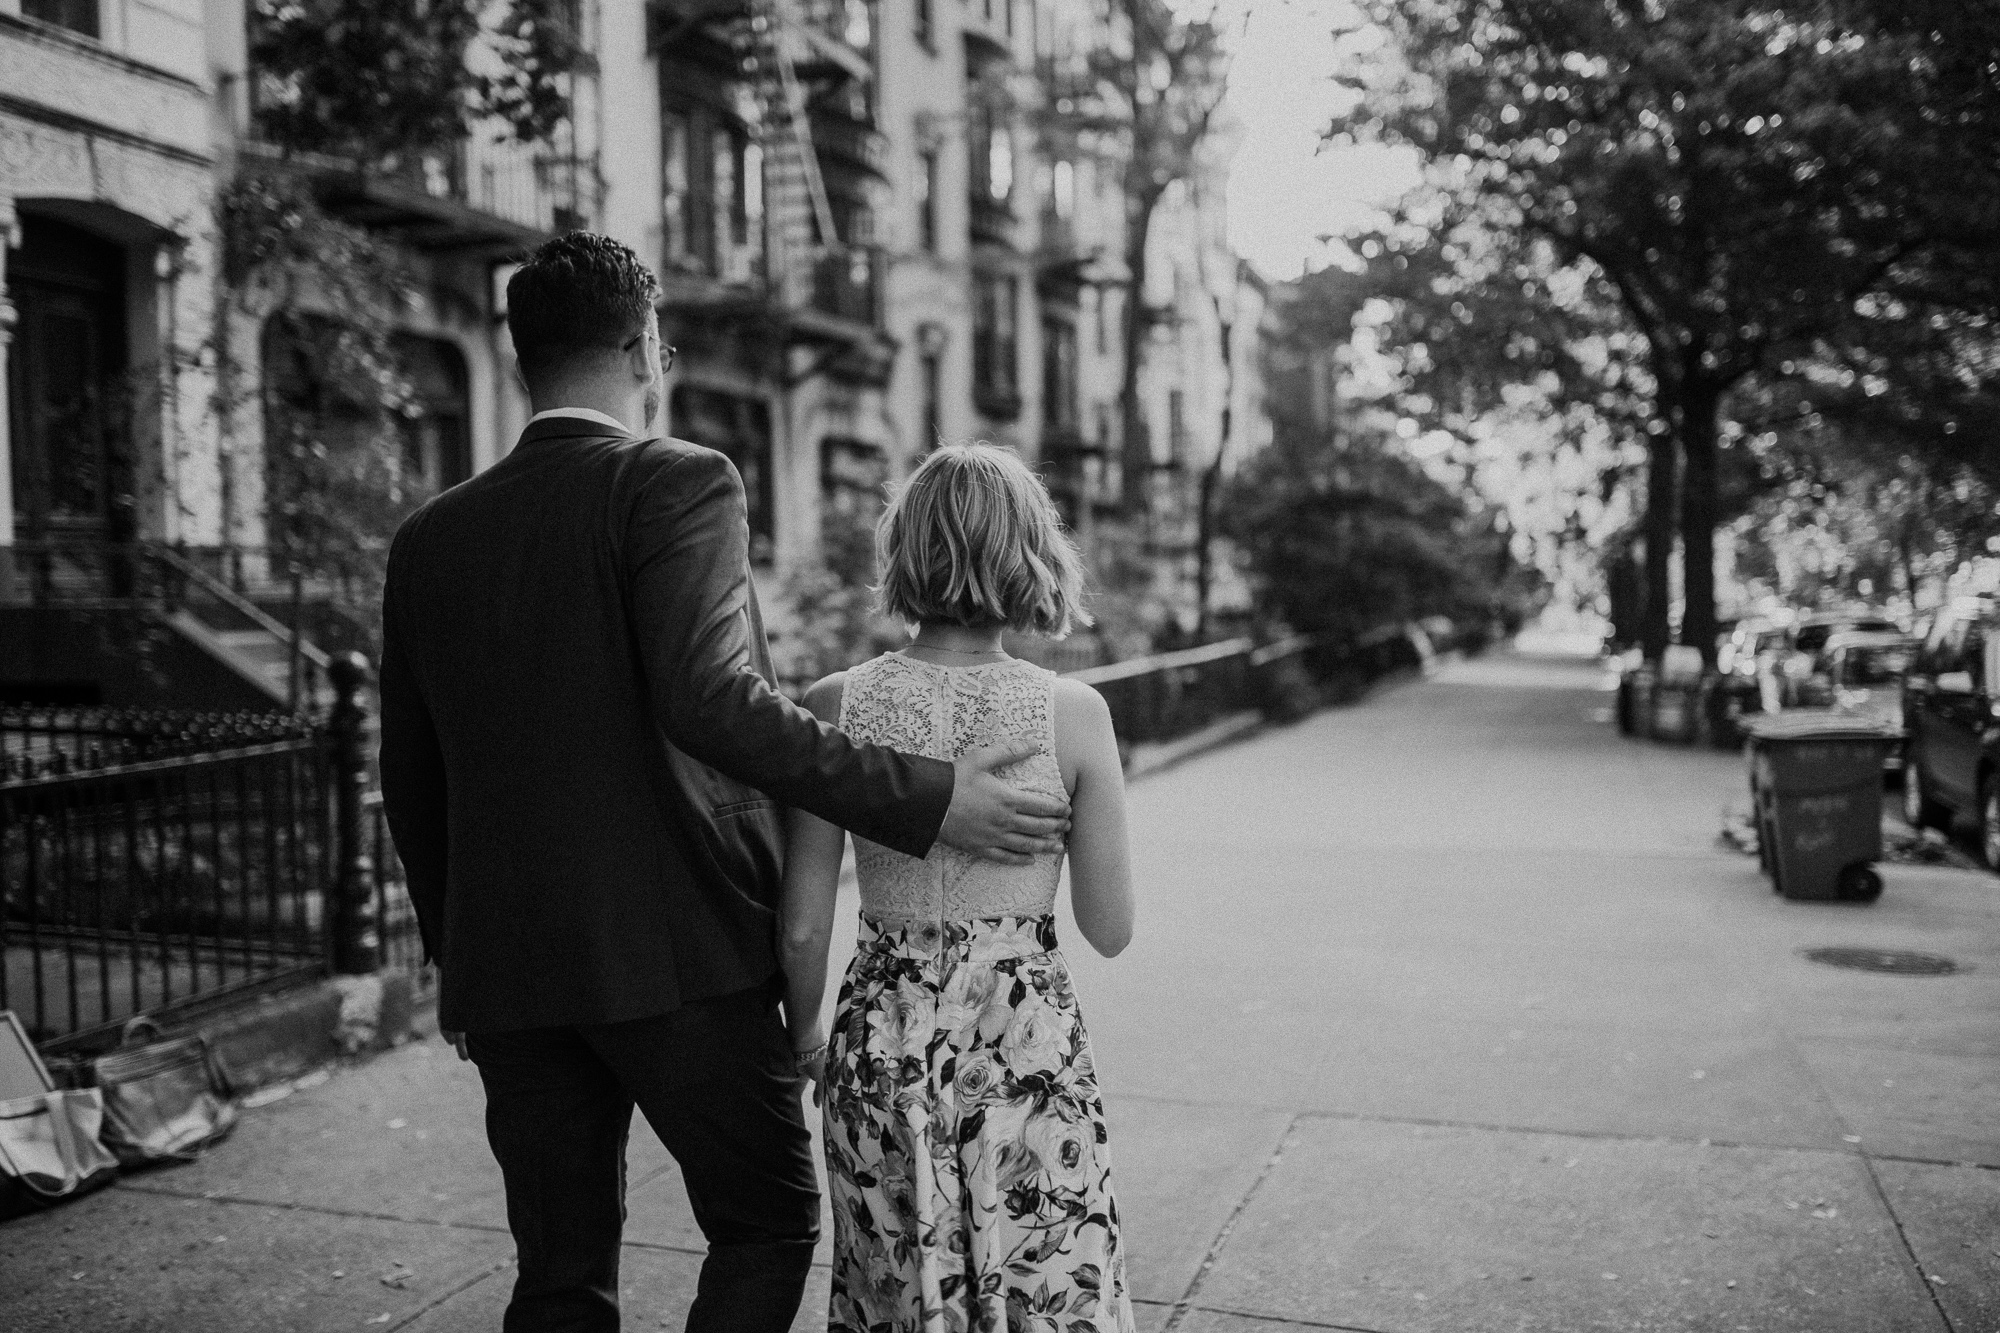 brooklyn_nyc_engagement_photography-20-of-83.jpg